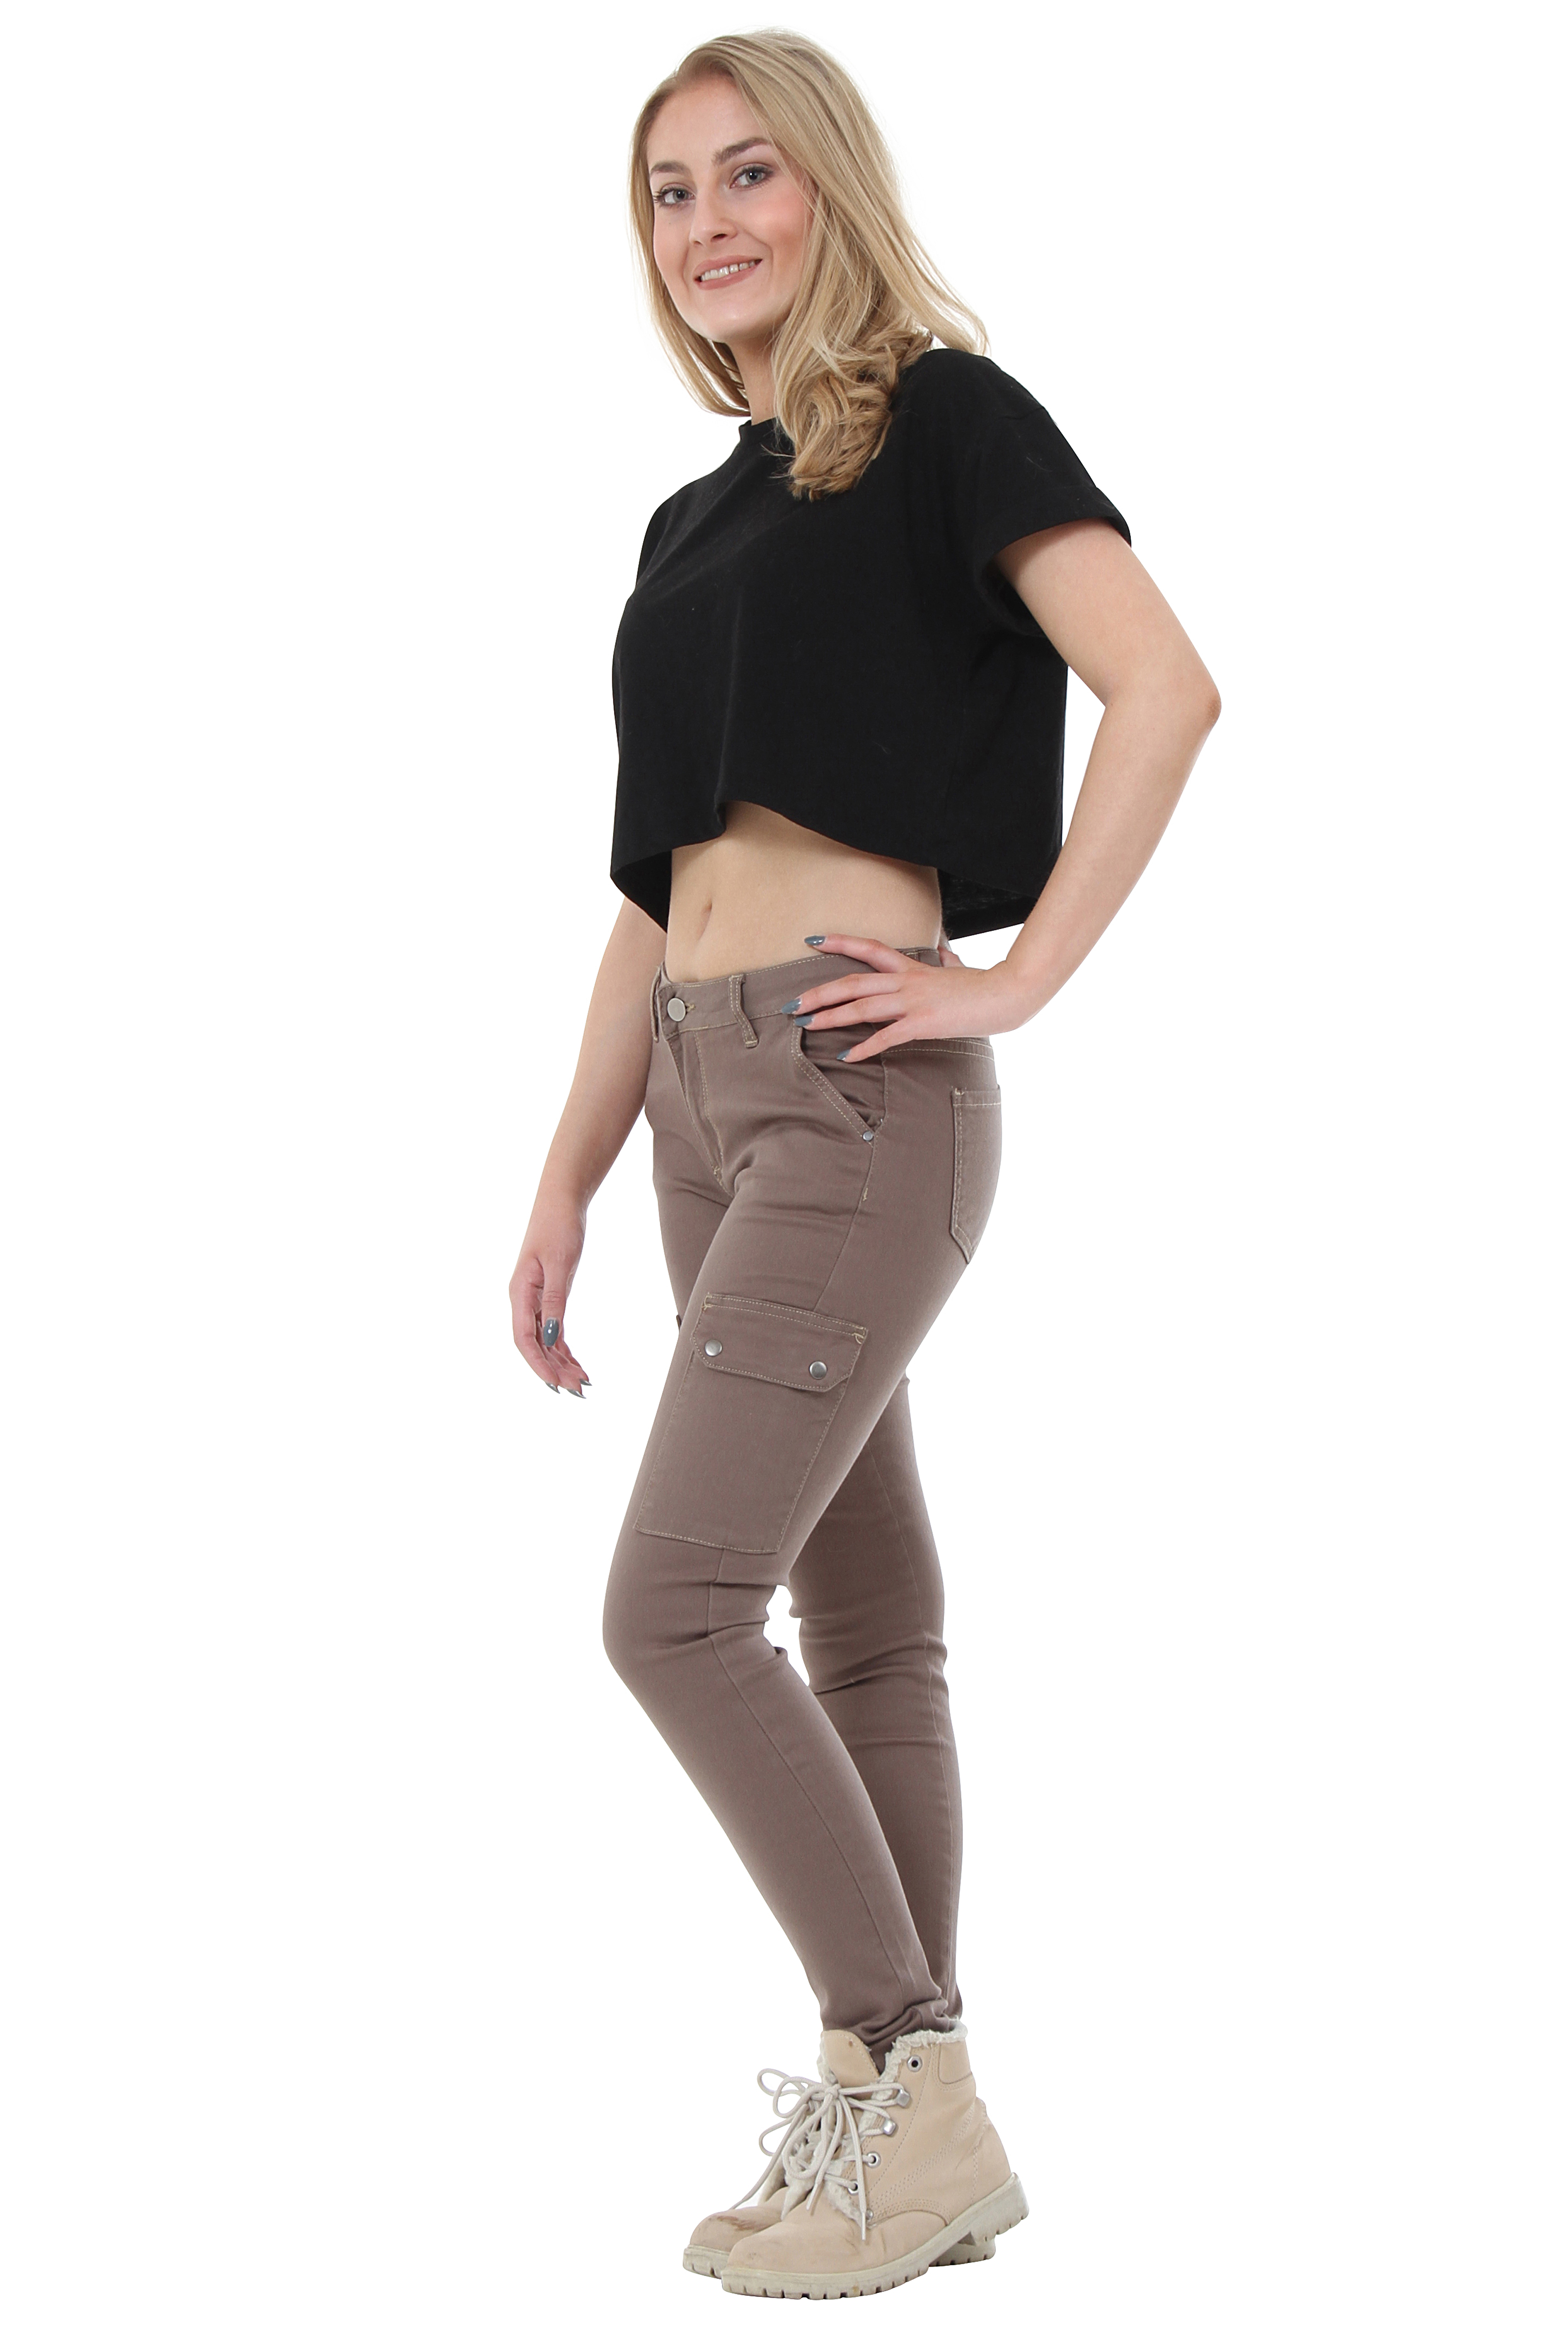 Slim Fit Dress Pants. Inject fashion into every day with slim fit dress pants. Women's styles now offer tailored leg-lines and flattering fabrics, creating perfect outfits with ease.